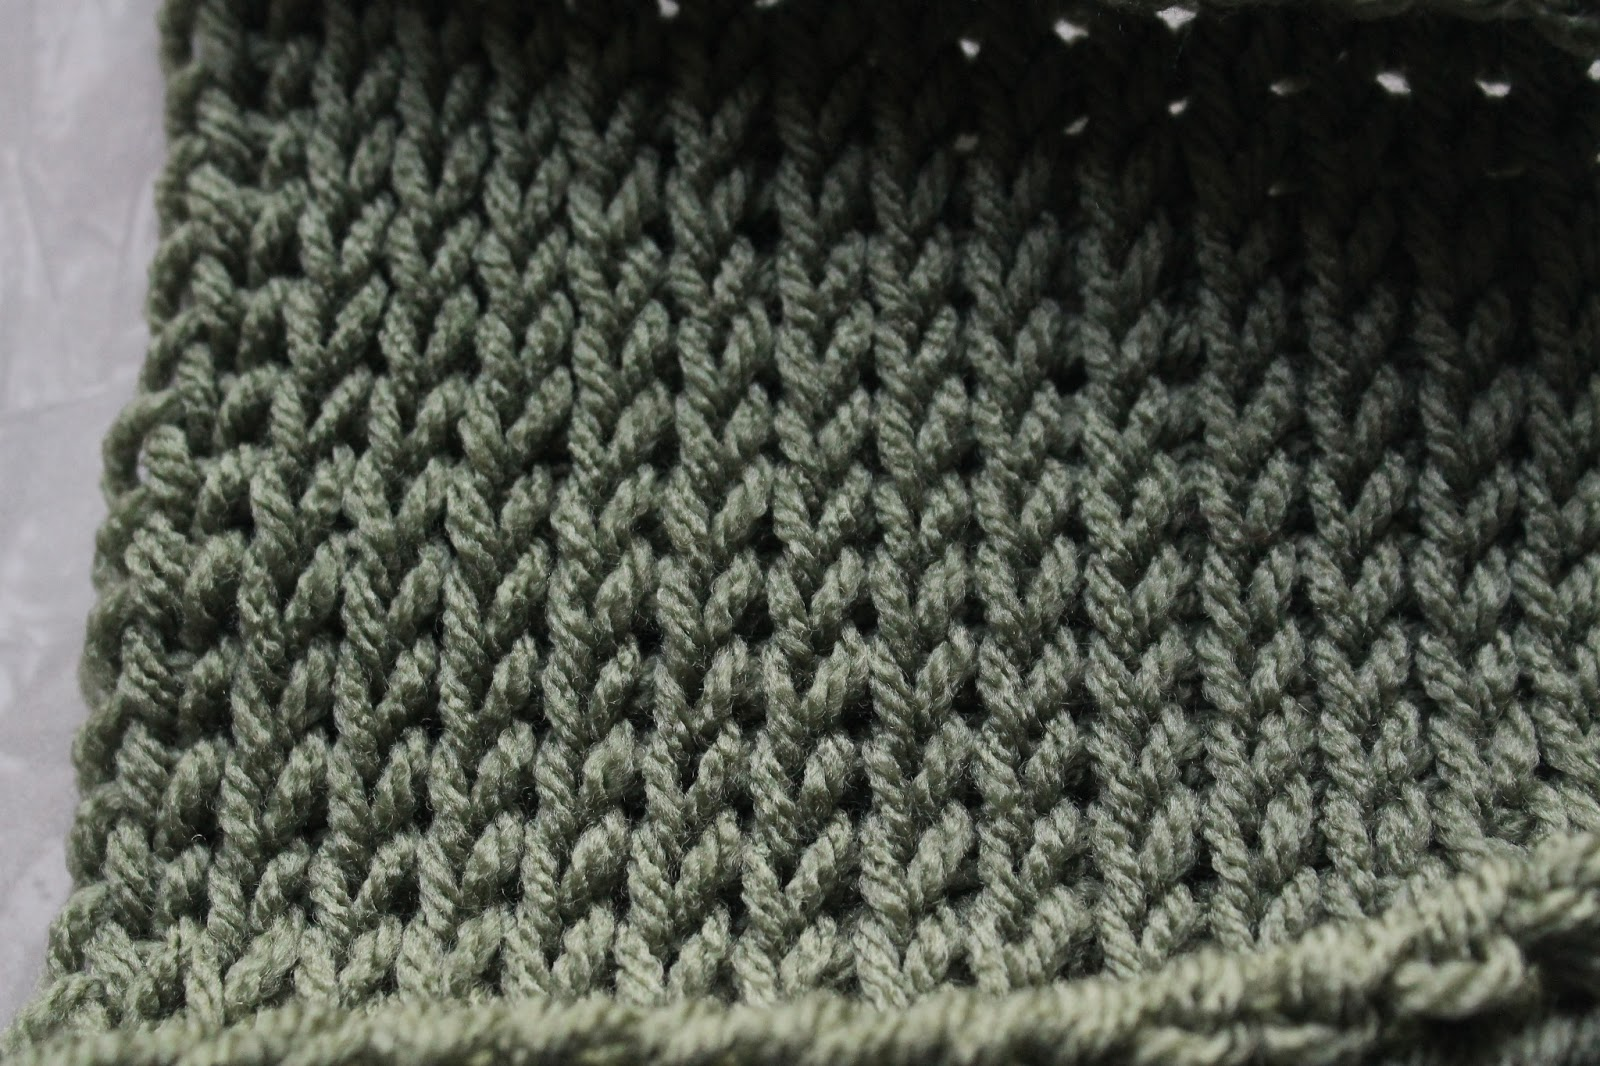 Crochet Stitches Look Like Knitting : the tunisian knit stitch tks looks like knitting but it s crocheted ...